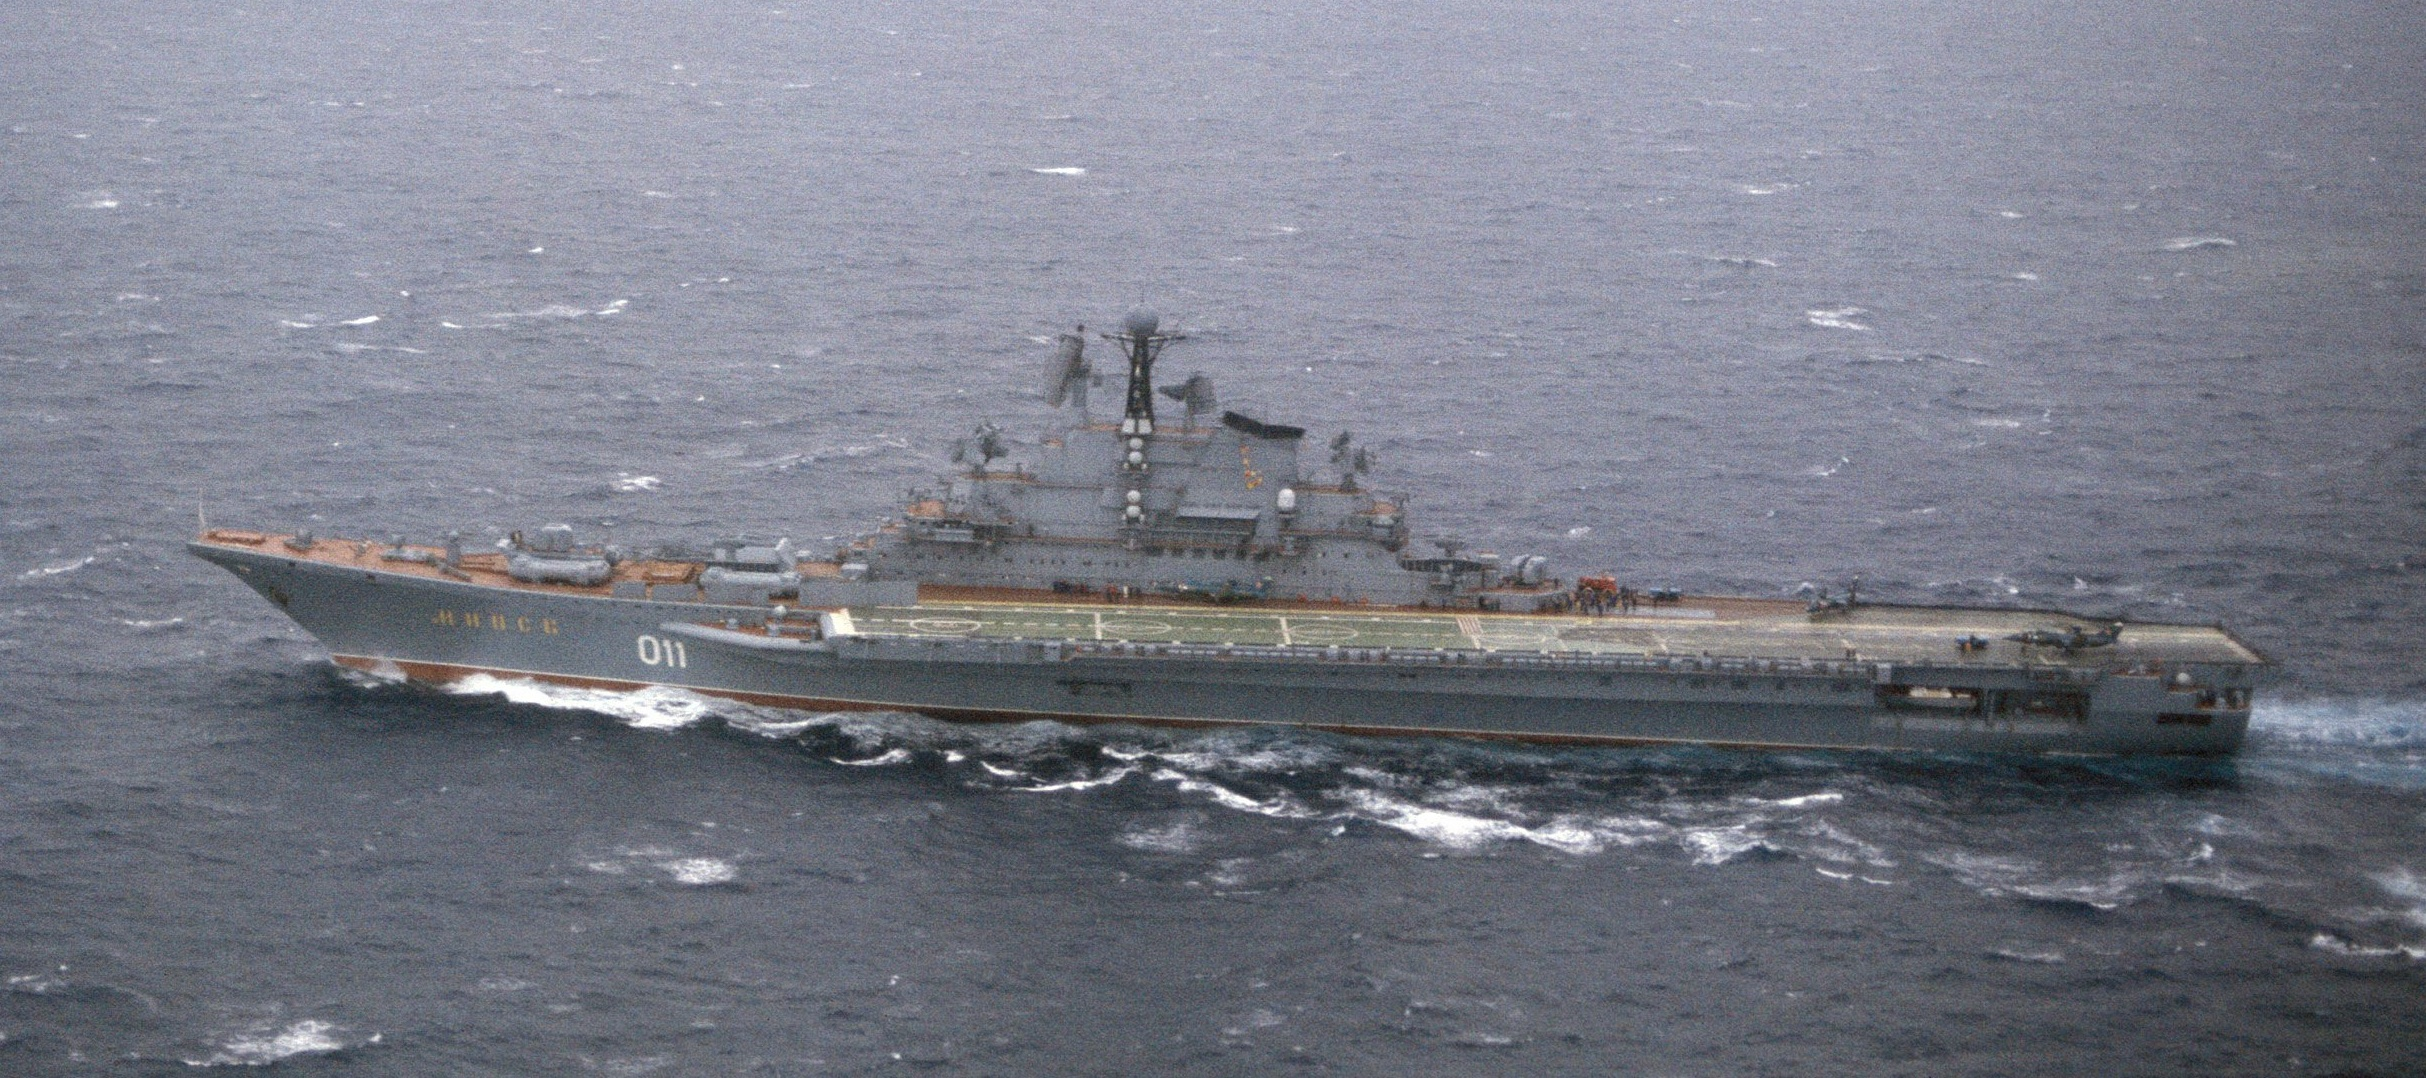 aircraft carrier diagram how to draw system flow soviet minsk wikipedia